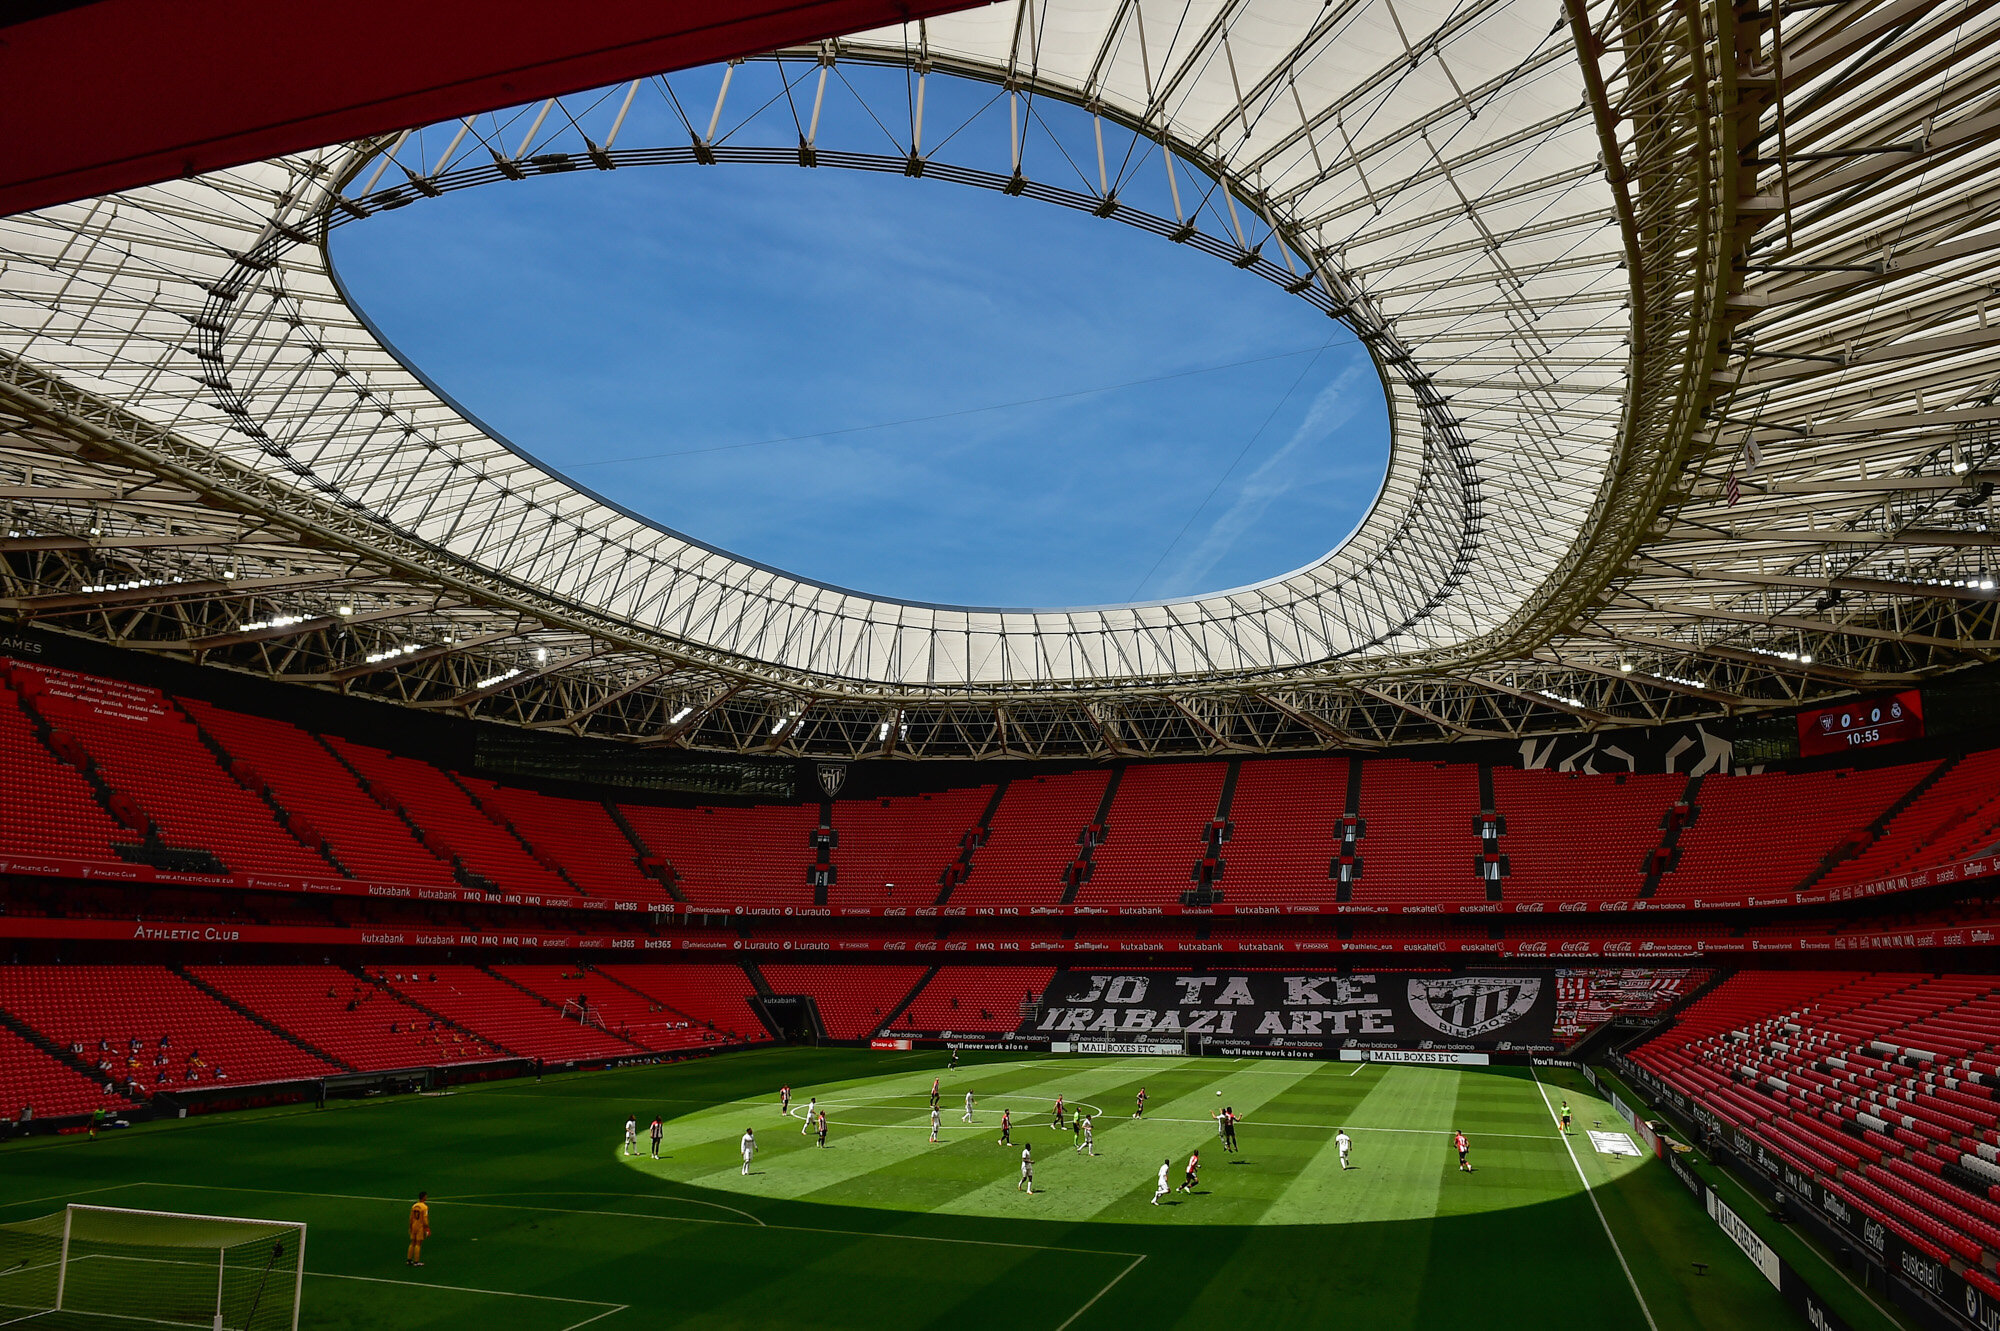 Athletic Club and Real Madrid play during their Spanish La Liga soccer match at the San Manes stadium, which is nearly empty, in Bilbao, Spain, on July 5, 2020. (AP Photo/Alvaro Barrientos)